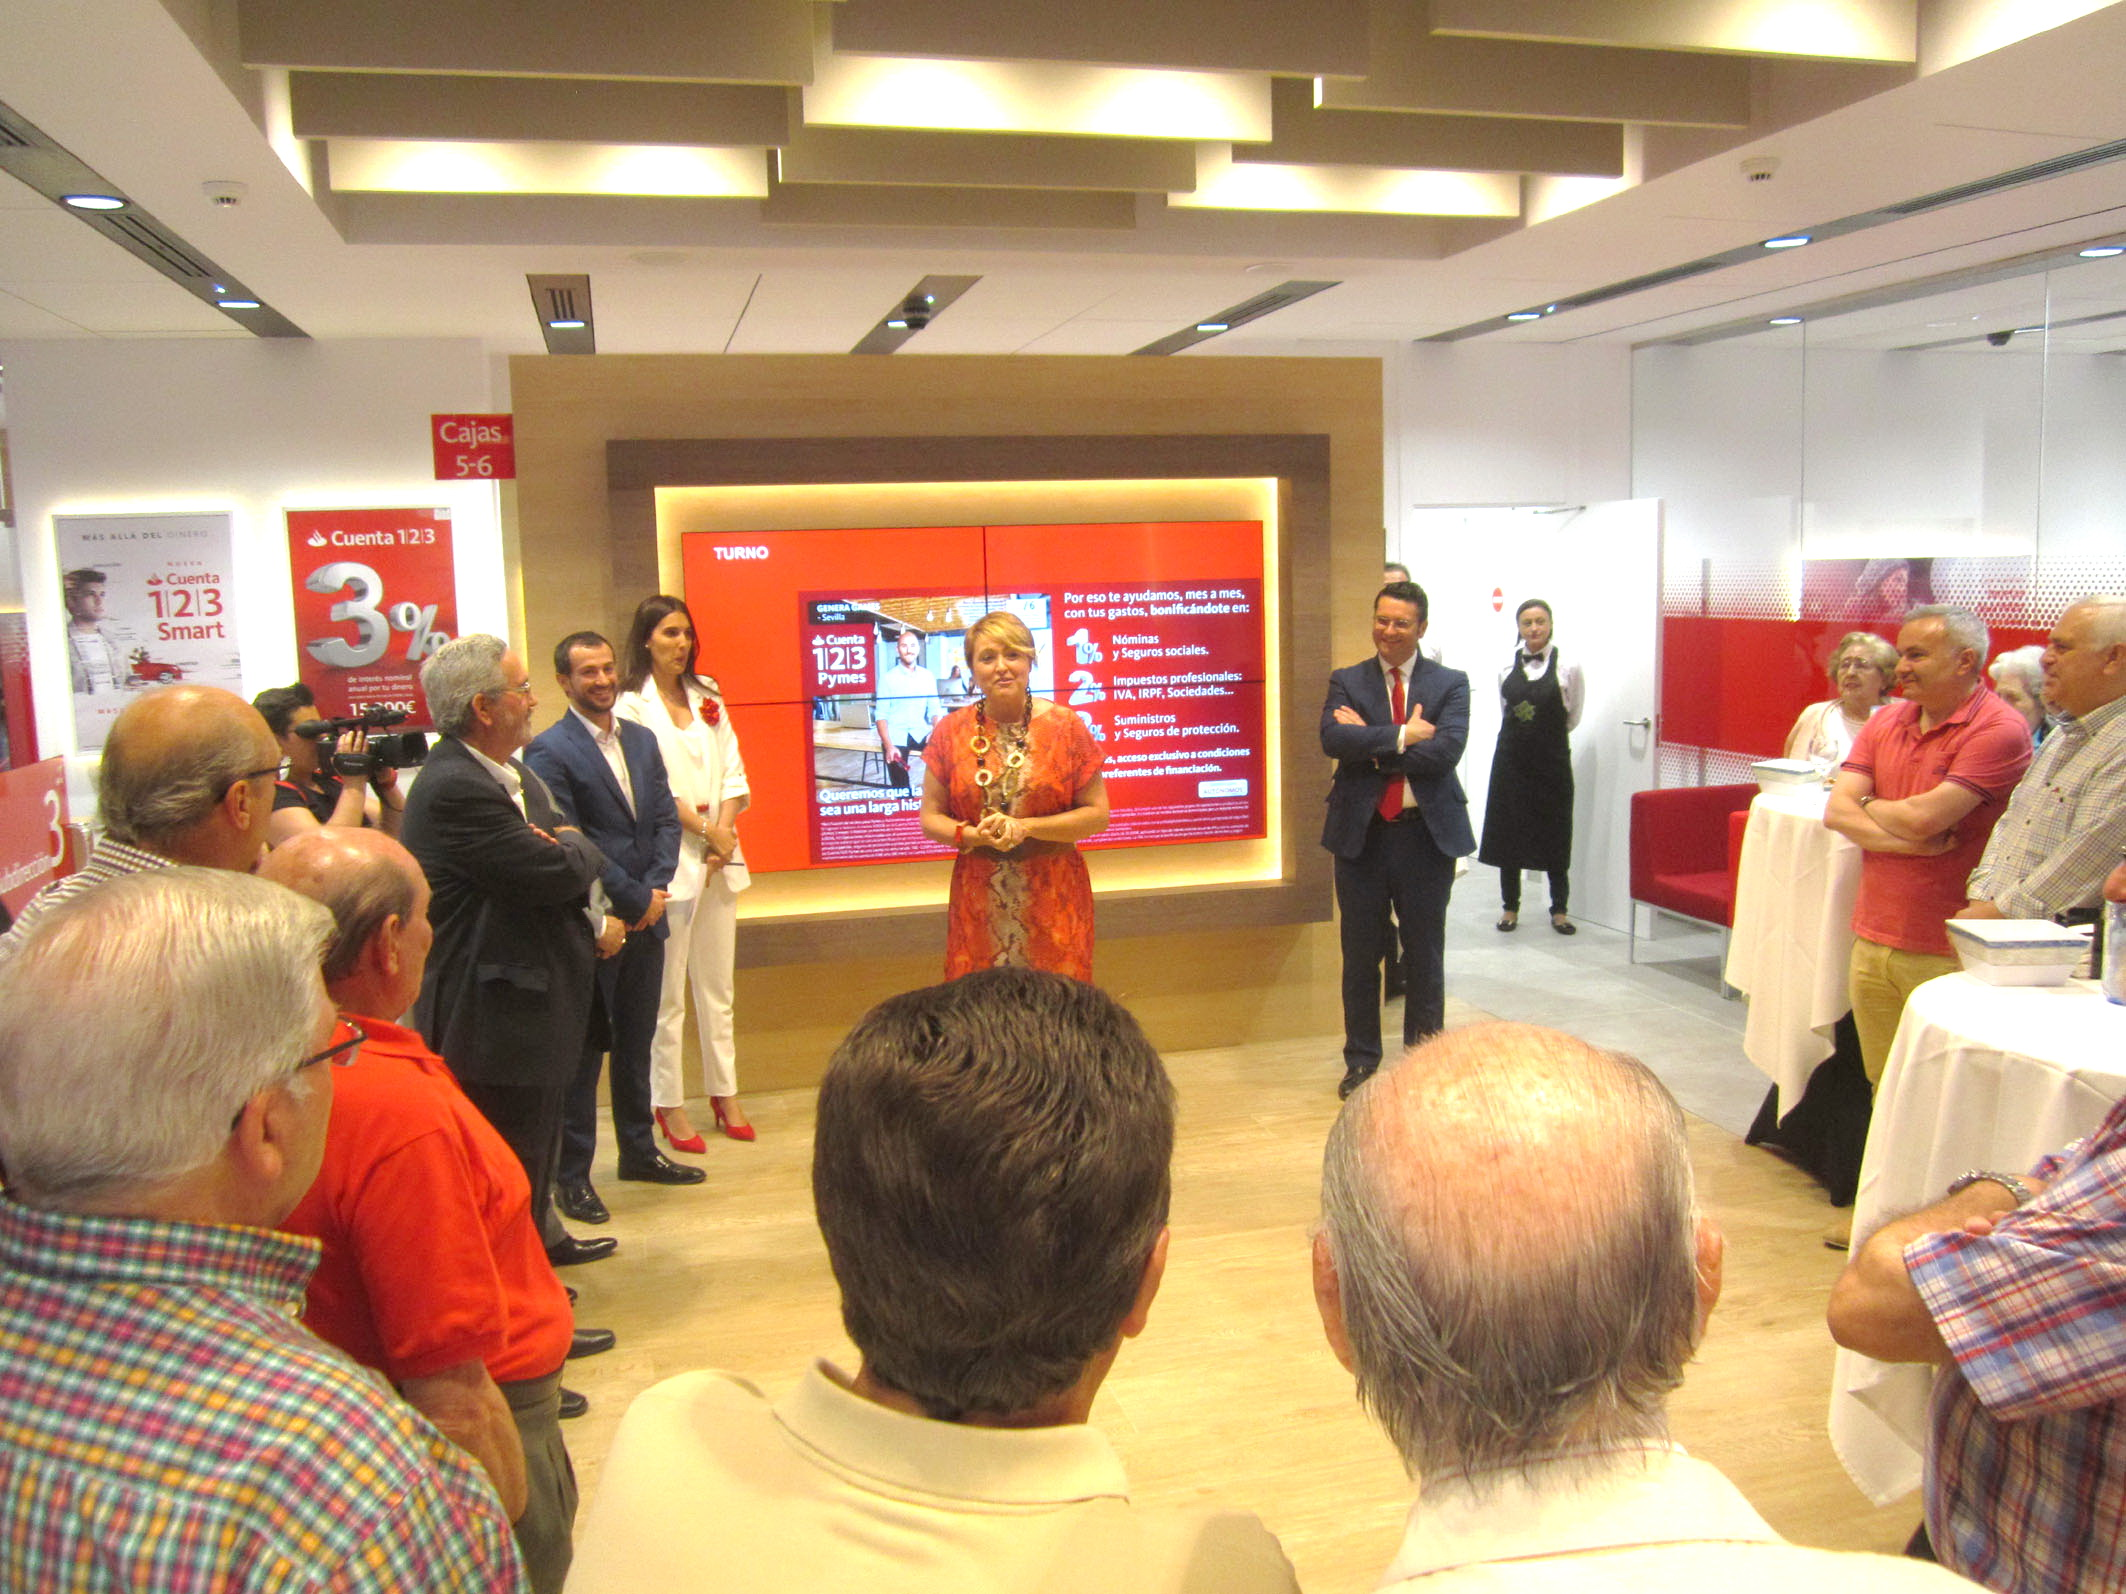 Banco santander inaugura su oficina smart red en for Banco santander oficinas